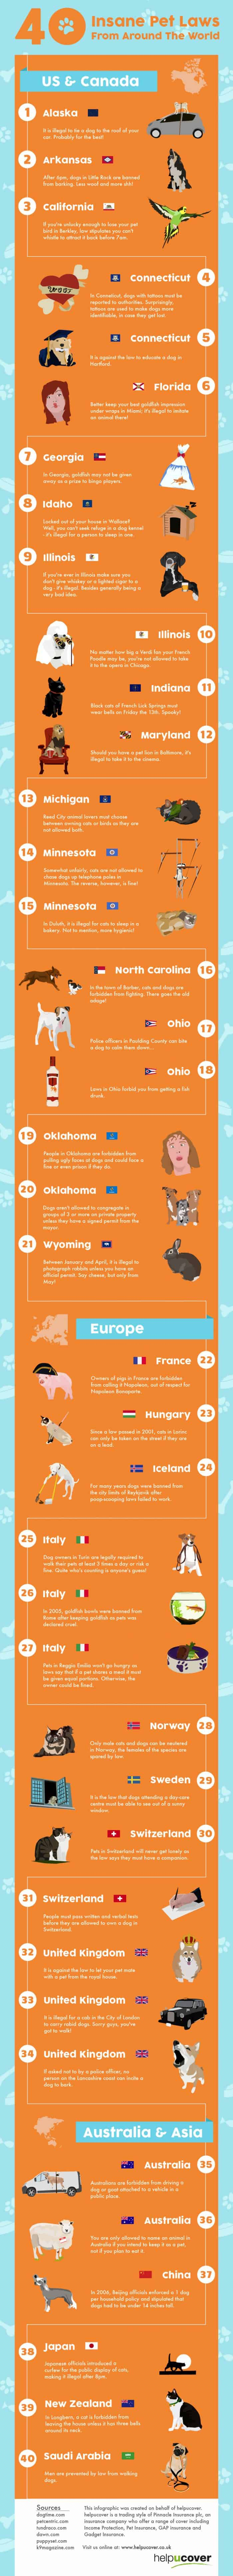 Weird pet laws around the world infographic